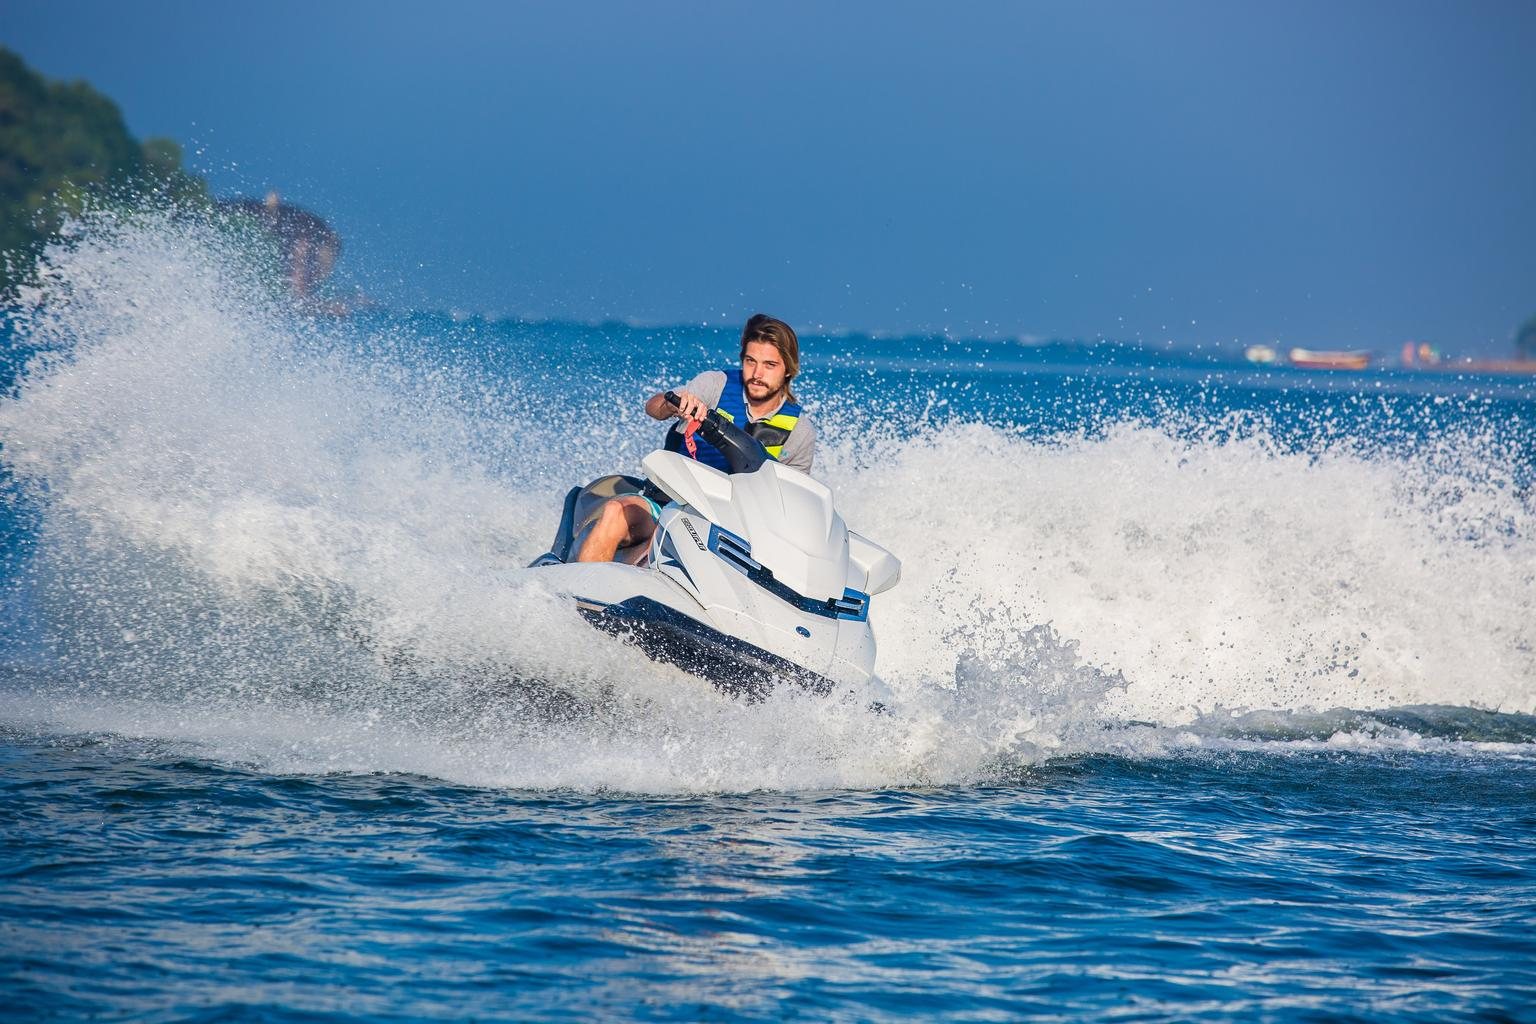 Extreme Water Sports to try out in Kalutara – Adrenaline Pumping Activities